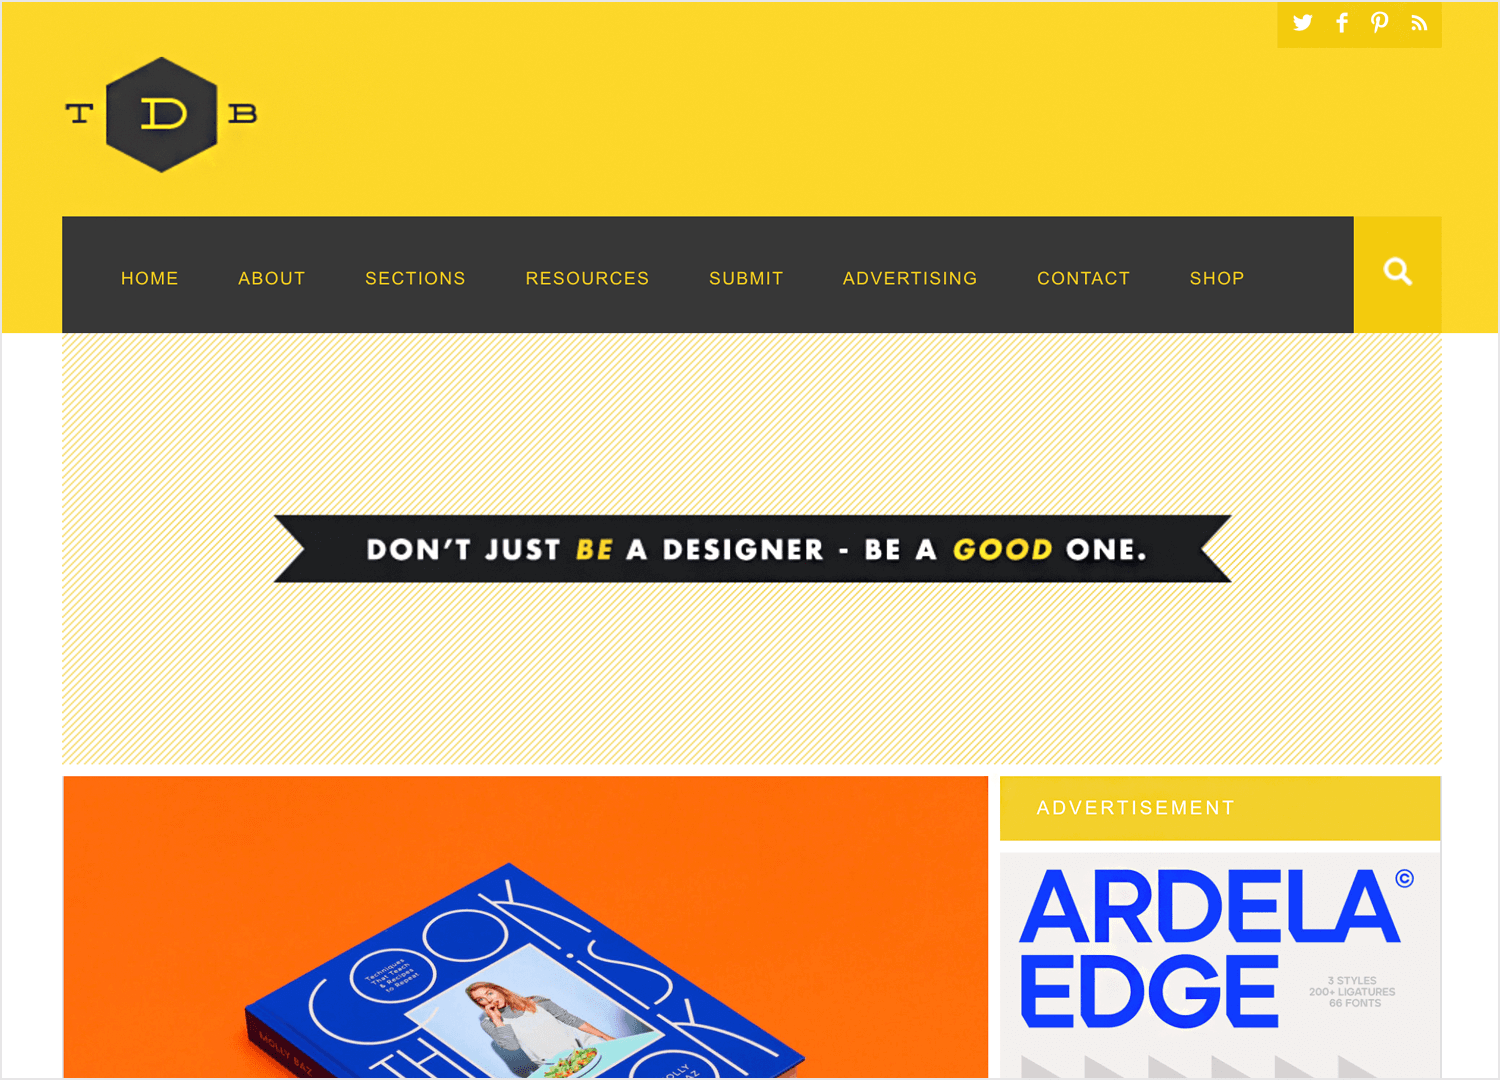 the DSGN blog for web design ideas and inspiration